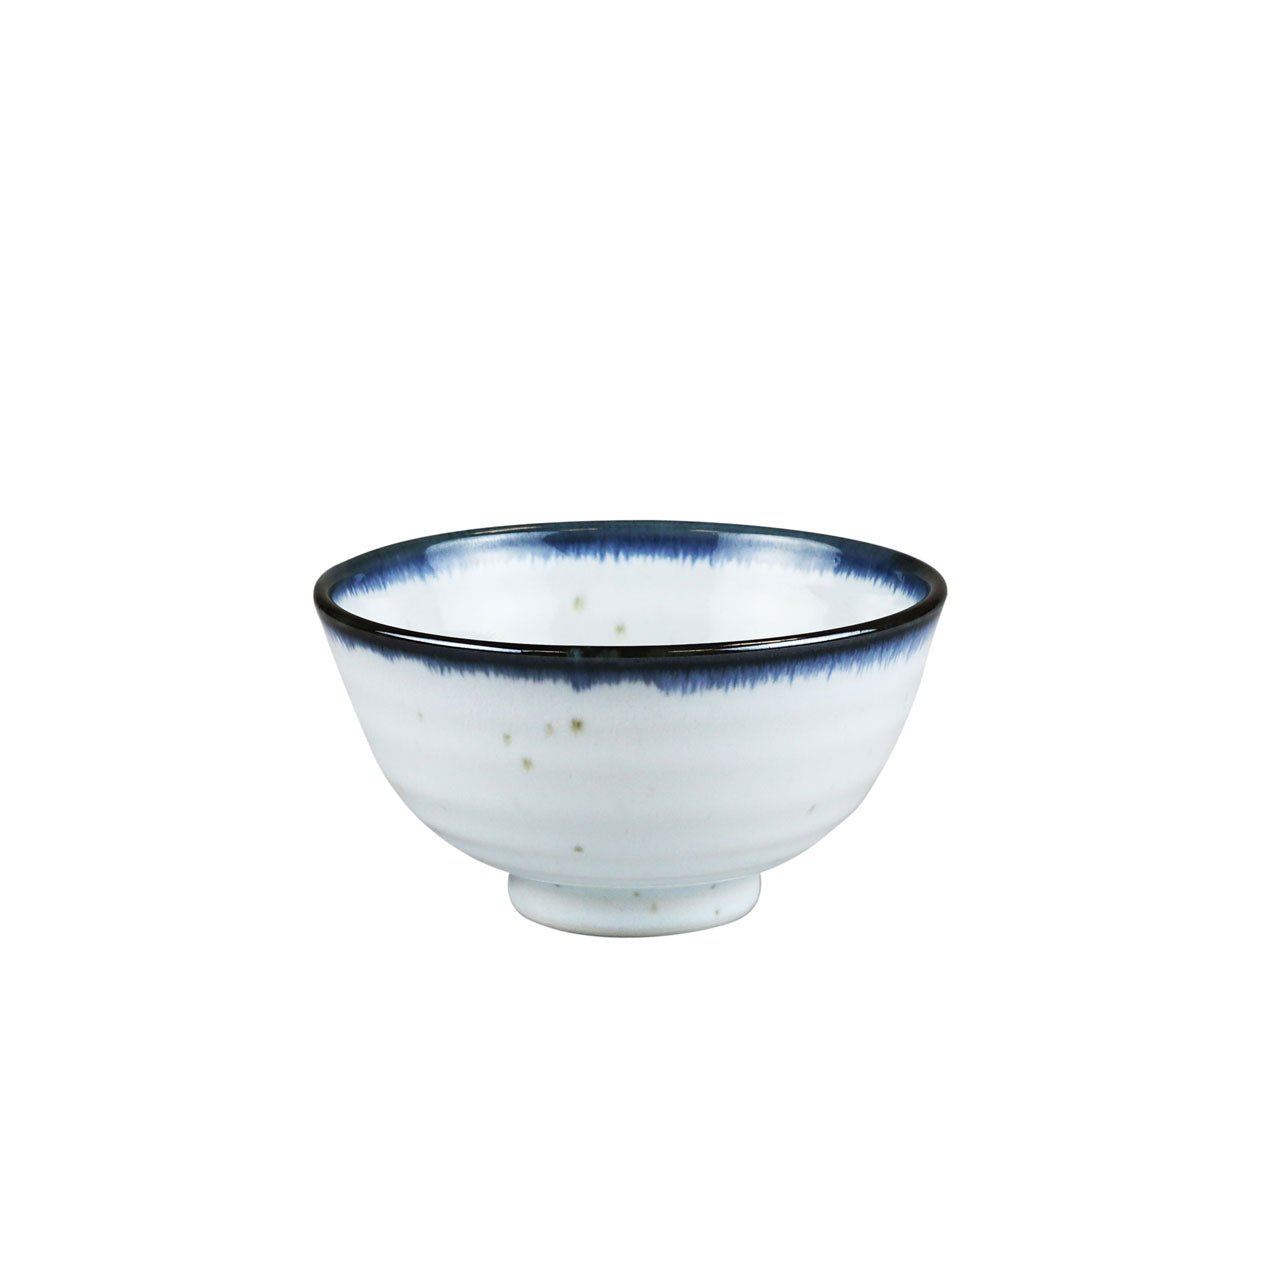 "Shirokinyo Ivory Speckled Rice Bowl with Indigo Rim 9.5 fl oz / 4.45"" dia"